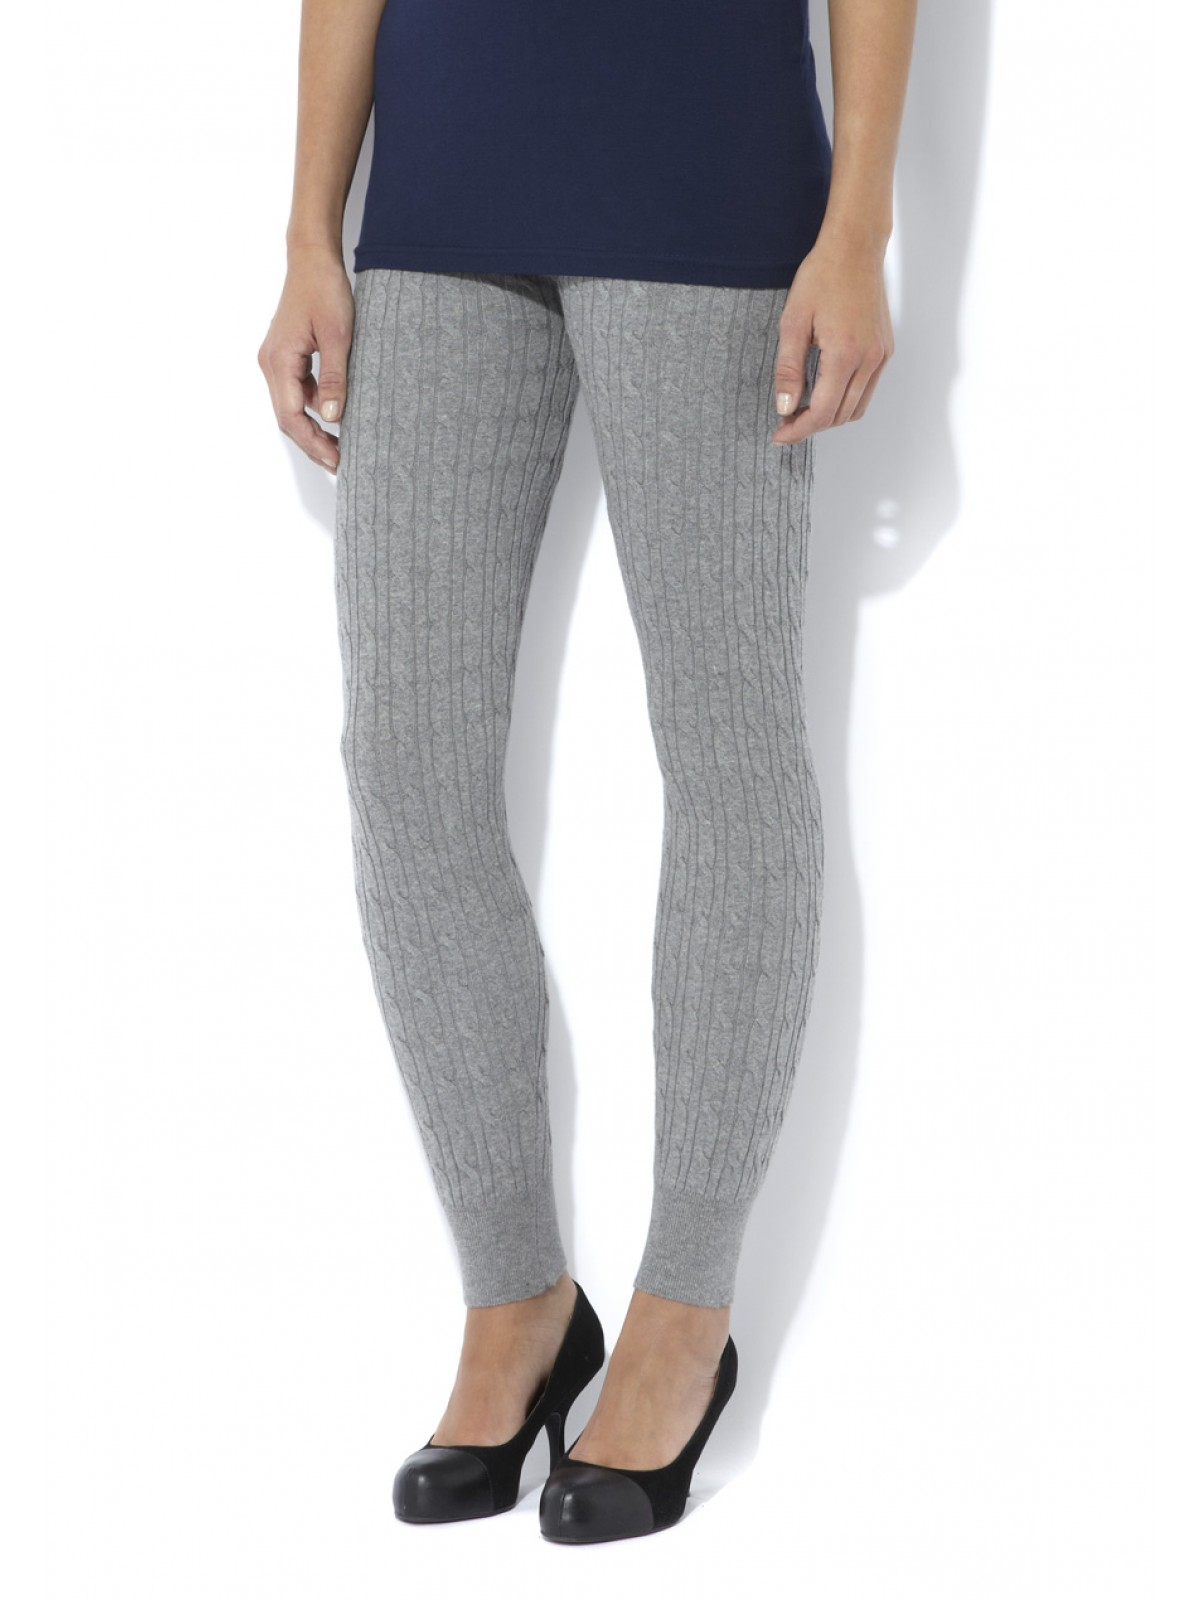 cable knit leggings cableknit leggings qlaitvk